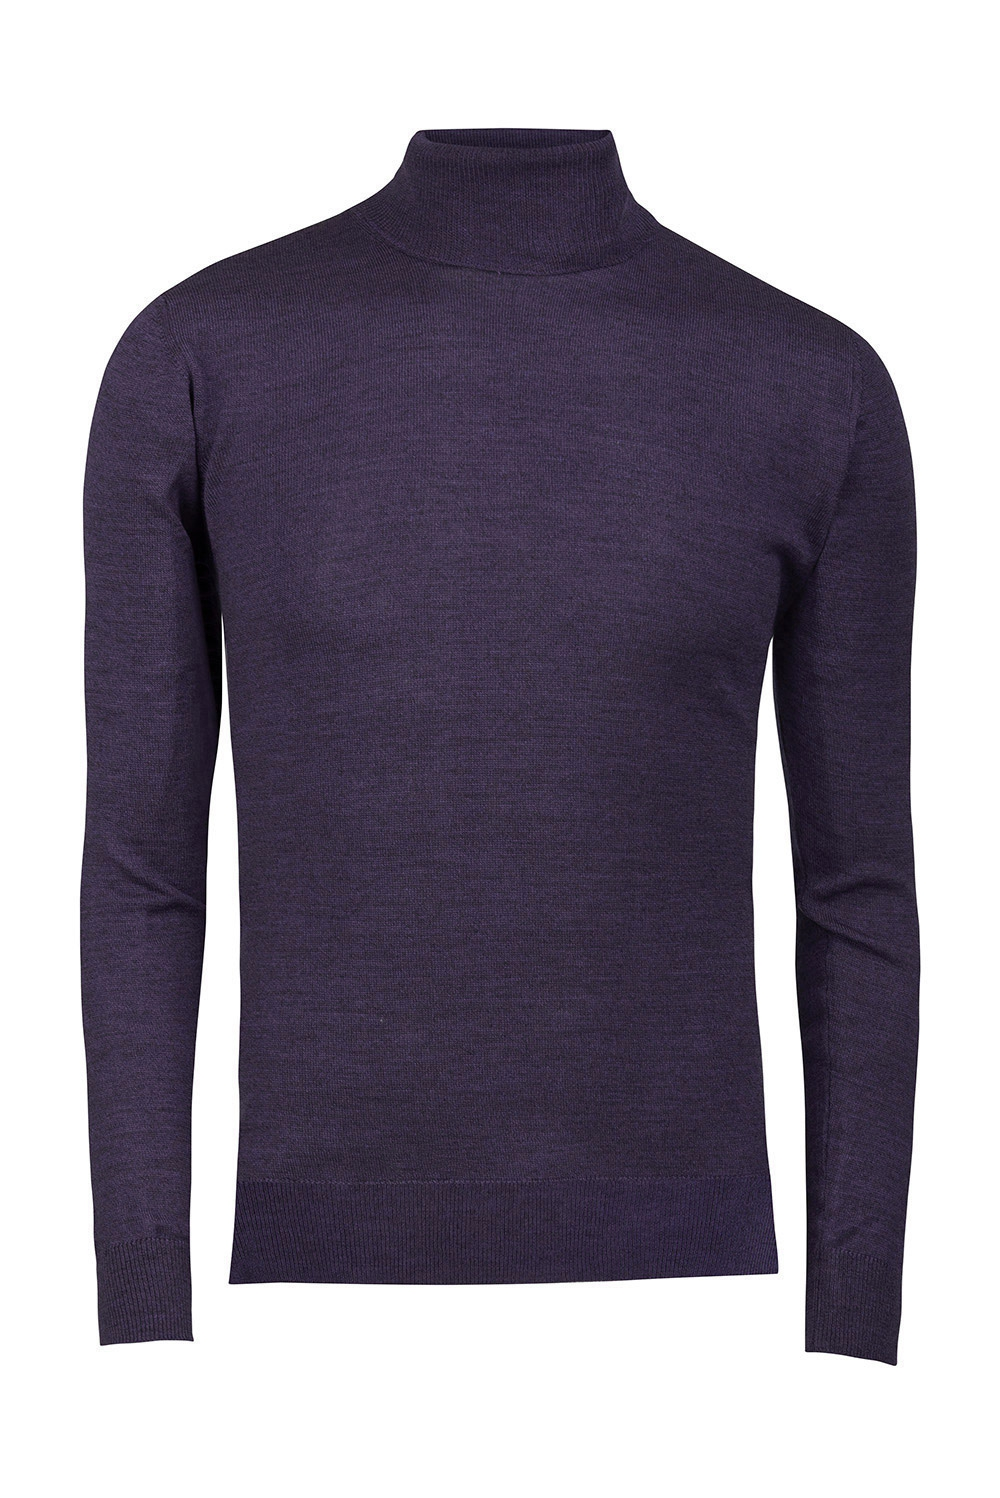 Slim Purple Sweater 2